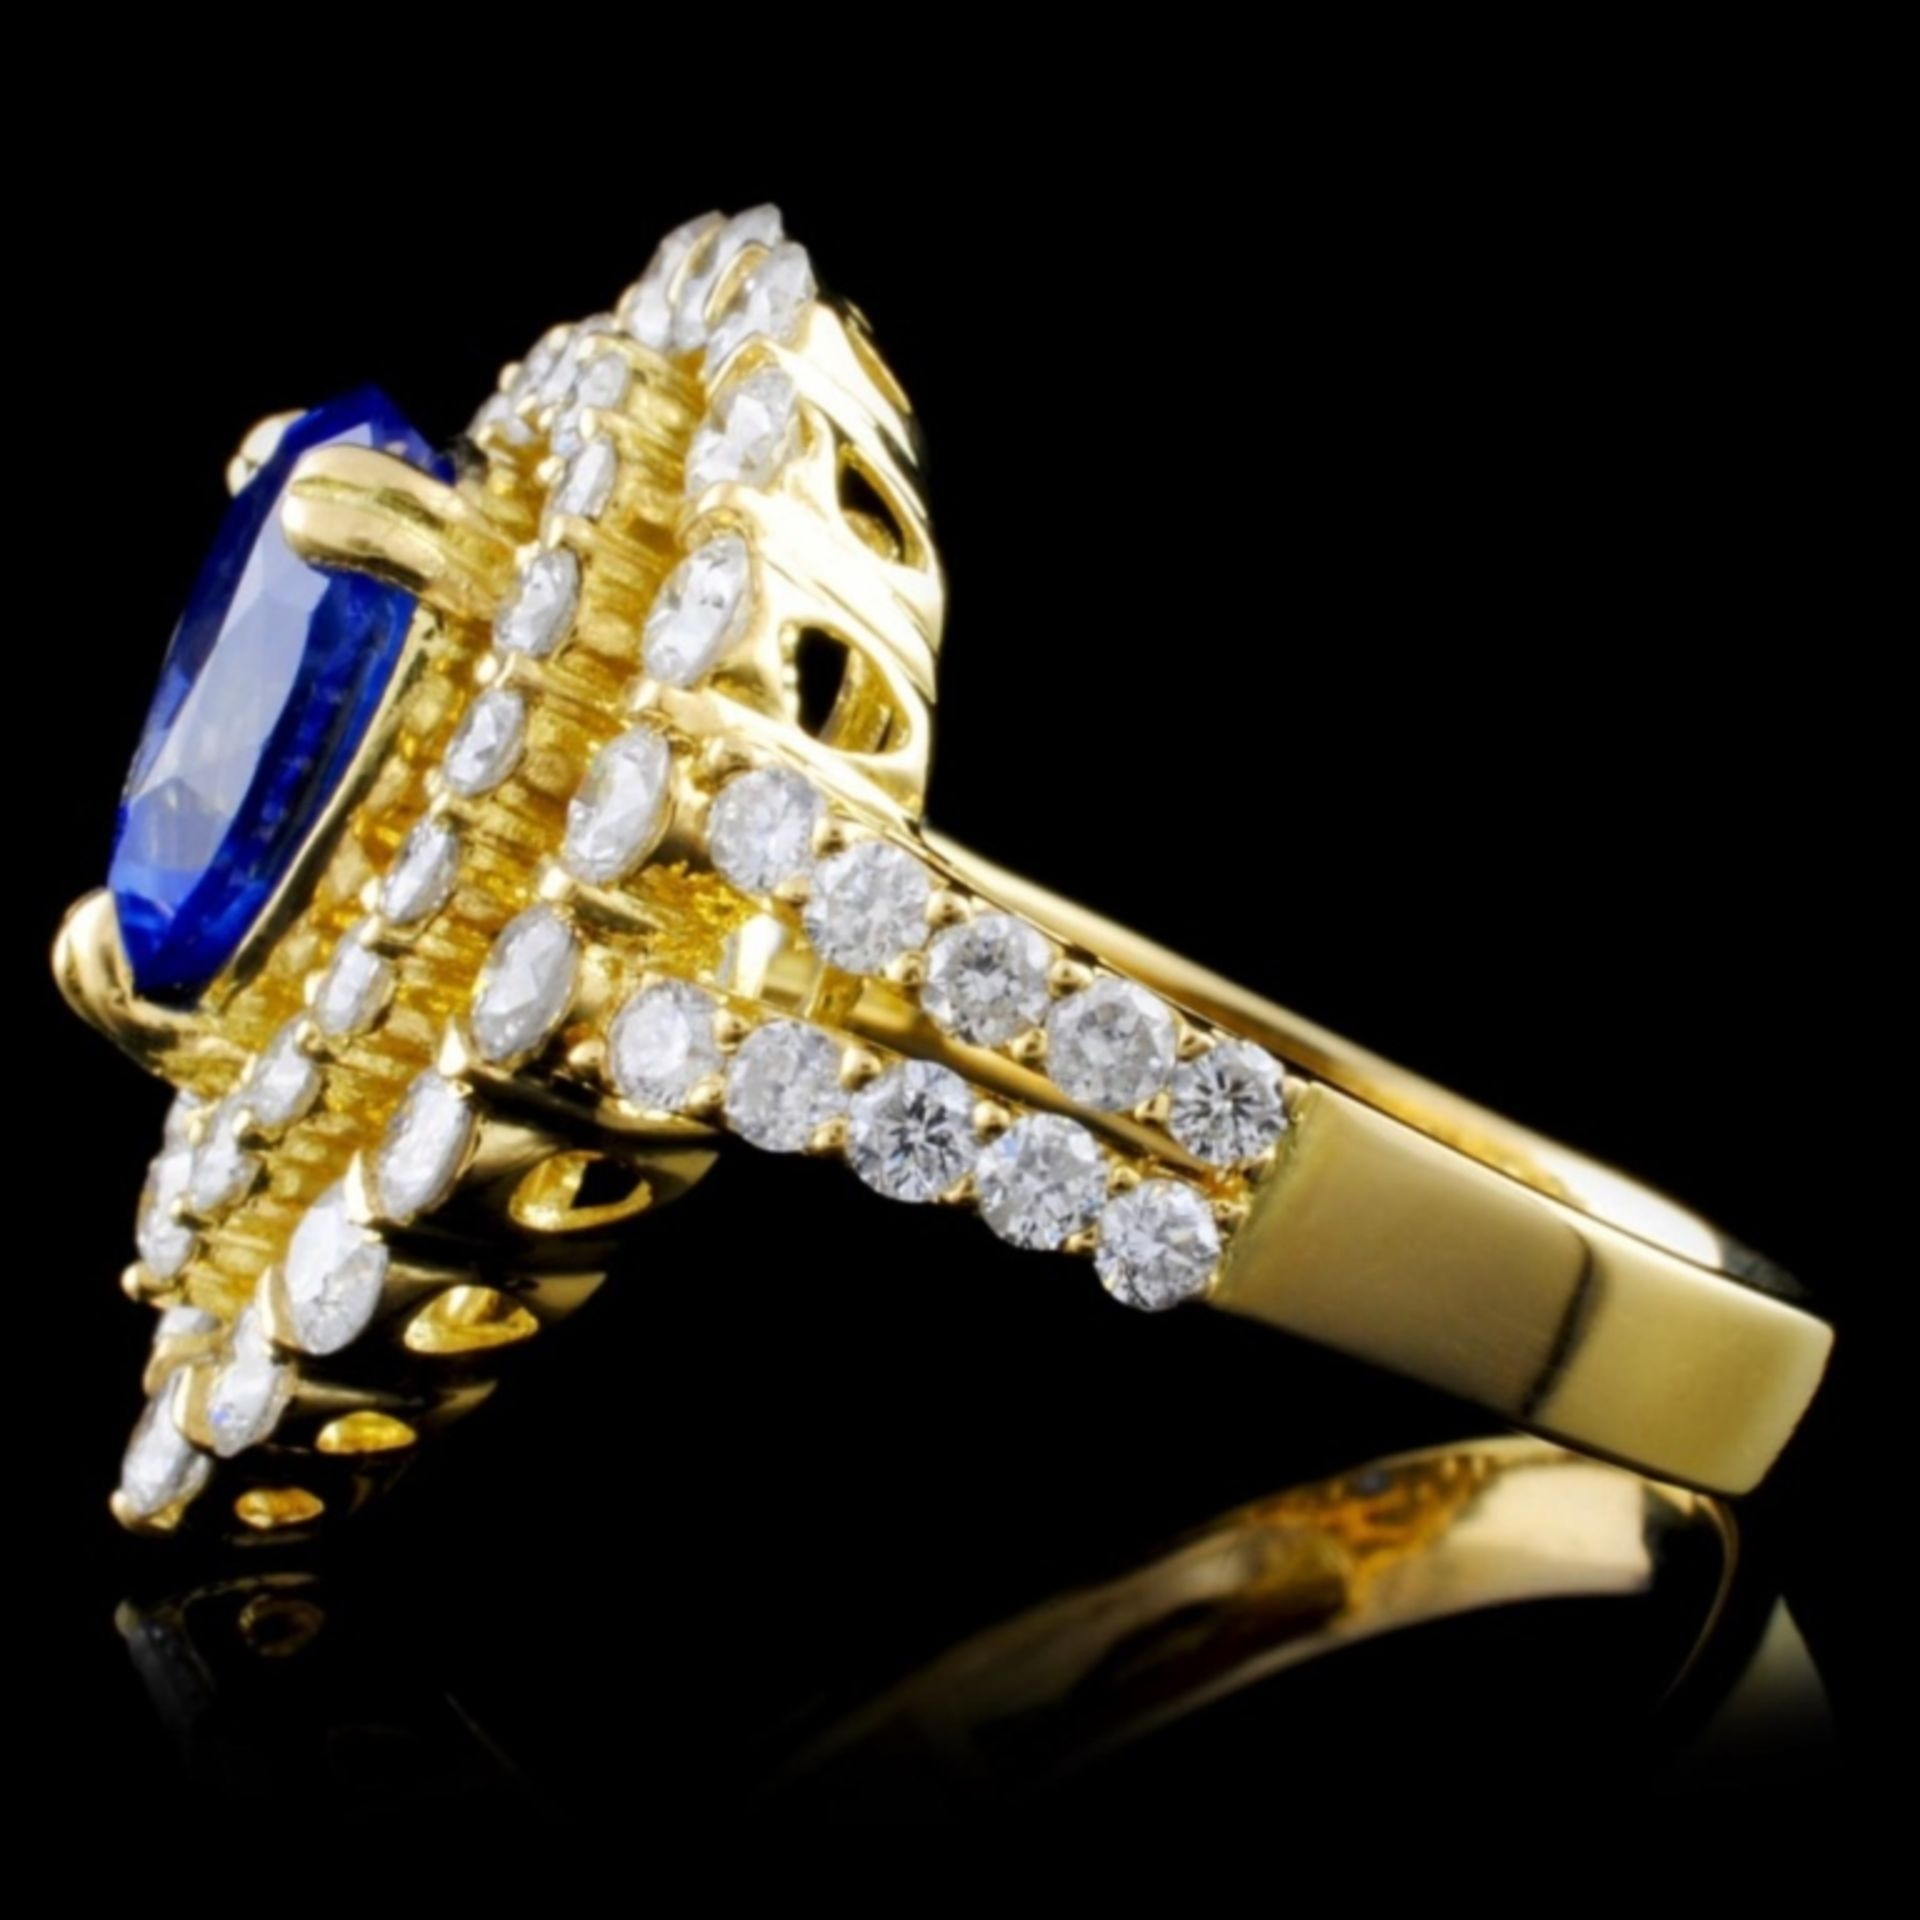 18K Y Gold 2.18ct Sapphire & 1.91ct Diamond Ring - Image 3 of 4